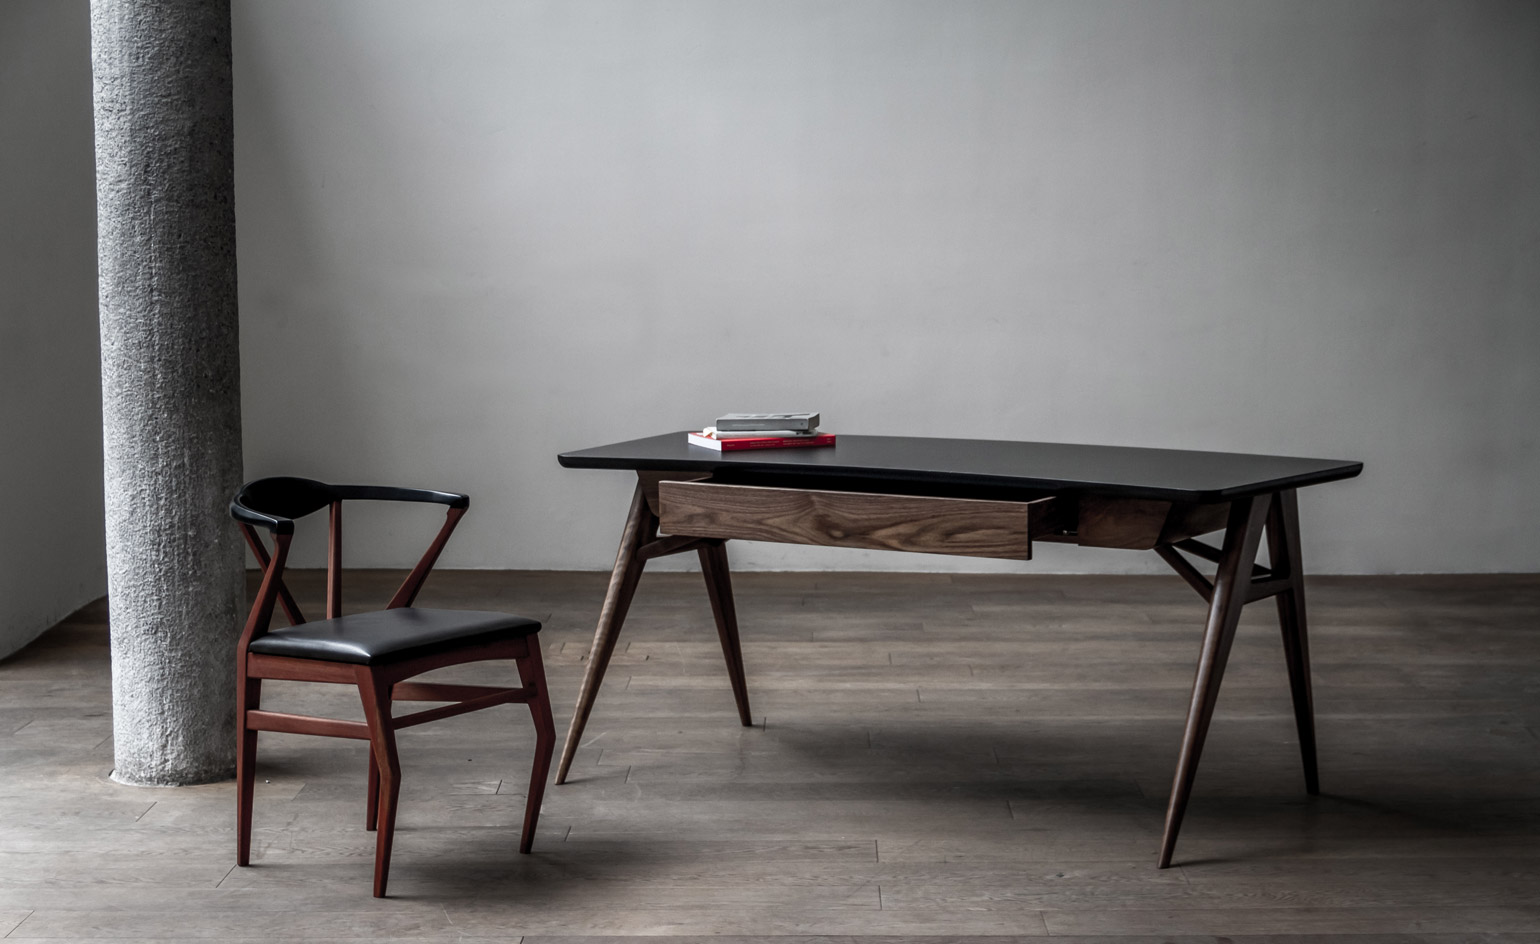 New design company luteca marries scandinavian design and for Chair new design